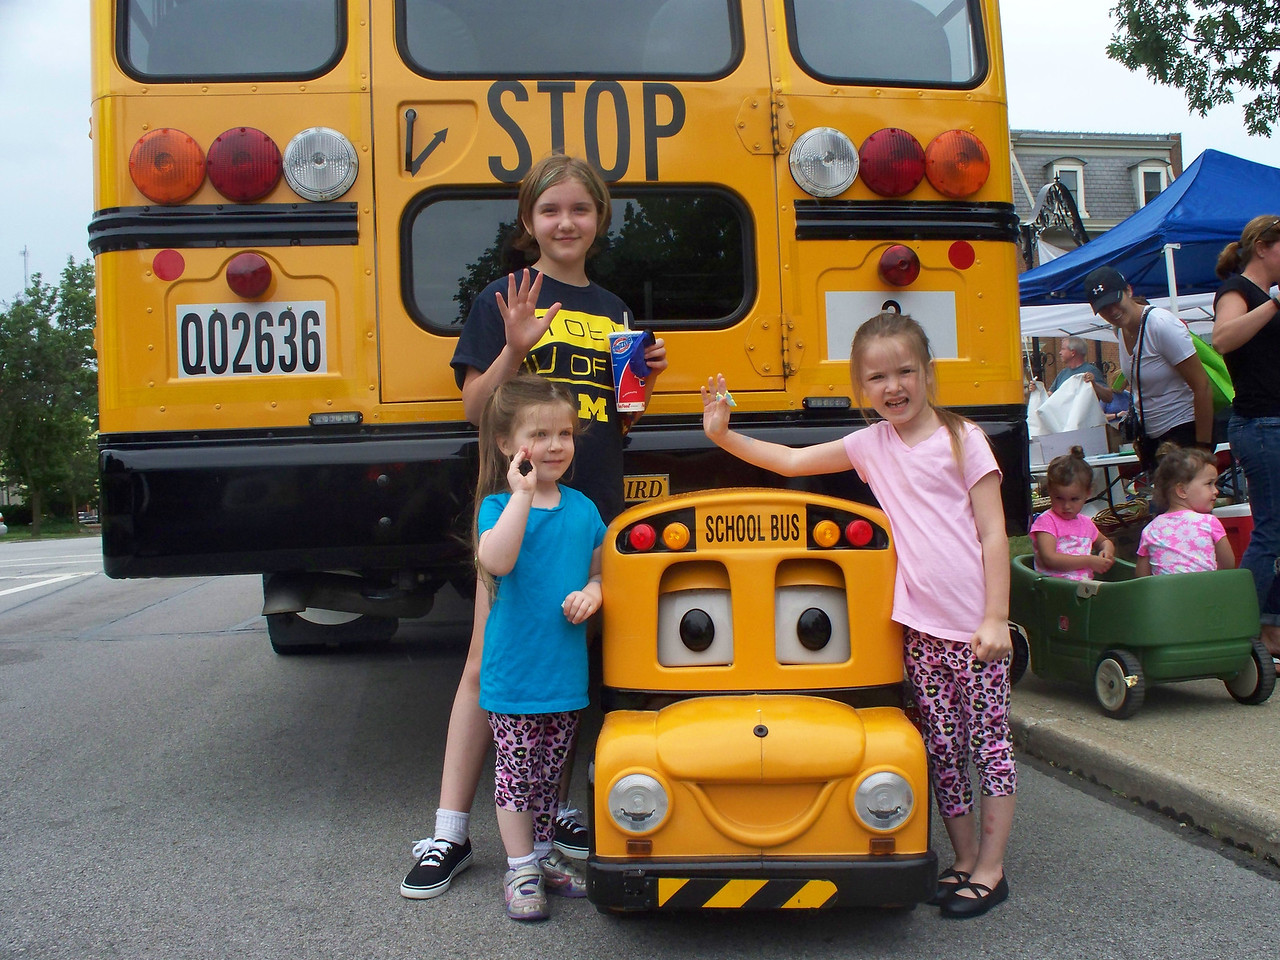 "NIKKI RHOADES / GAZETTE From left, sisters Serenity Courtwright, 11, Beatrice Thompson, 4, and Jacquelyne Thompson, 5, learned about school bus safety with Medina City Schools this weekend at Kids Day of Safety & Play. They were at the event with their grandmother Deborah Thompson, who said, ""It's a pretty fantastic event. We have had a lot of fun."""